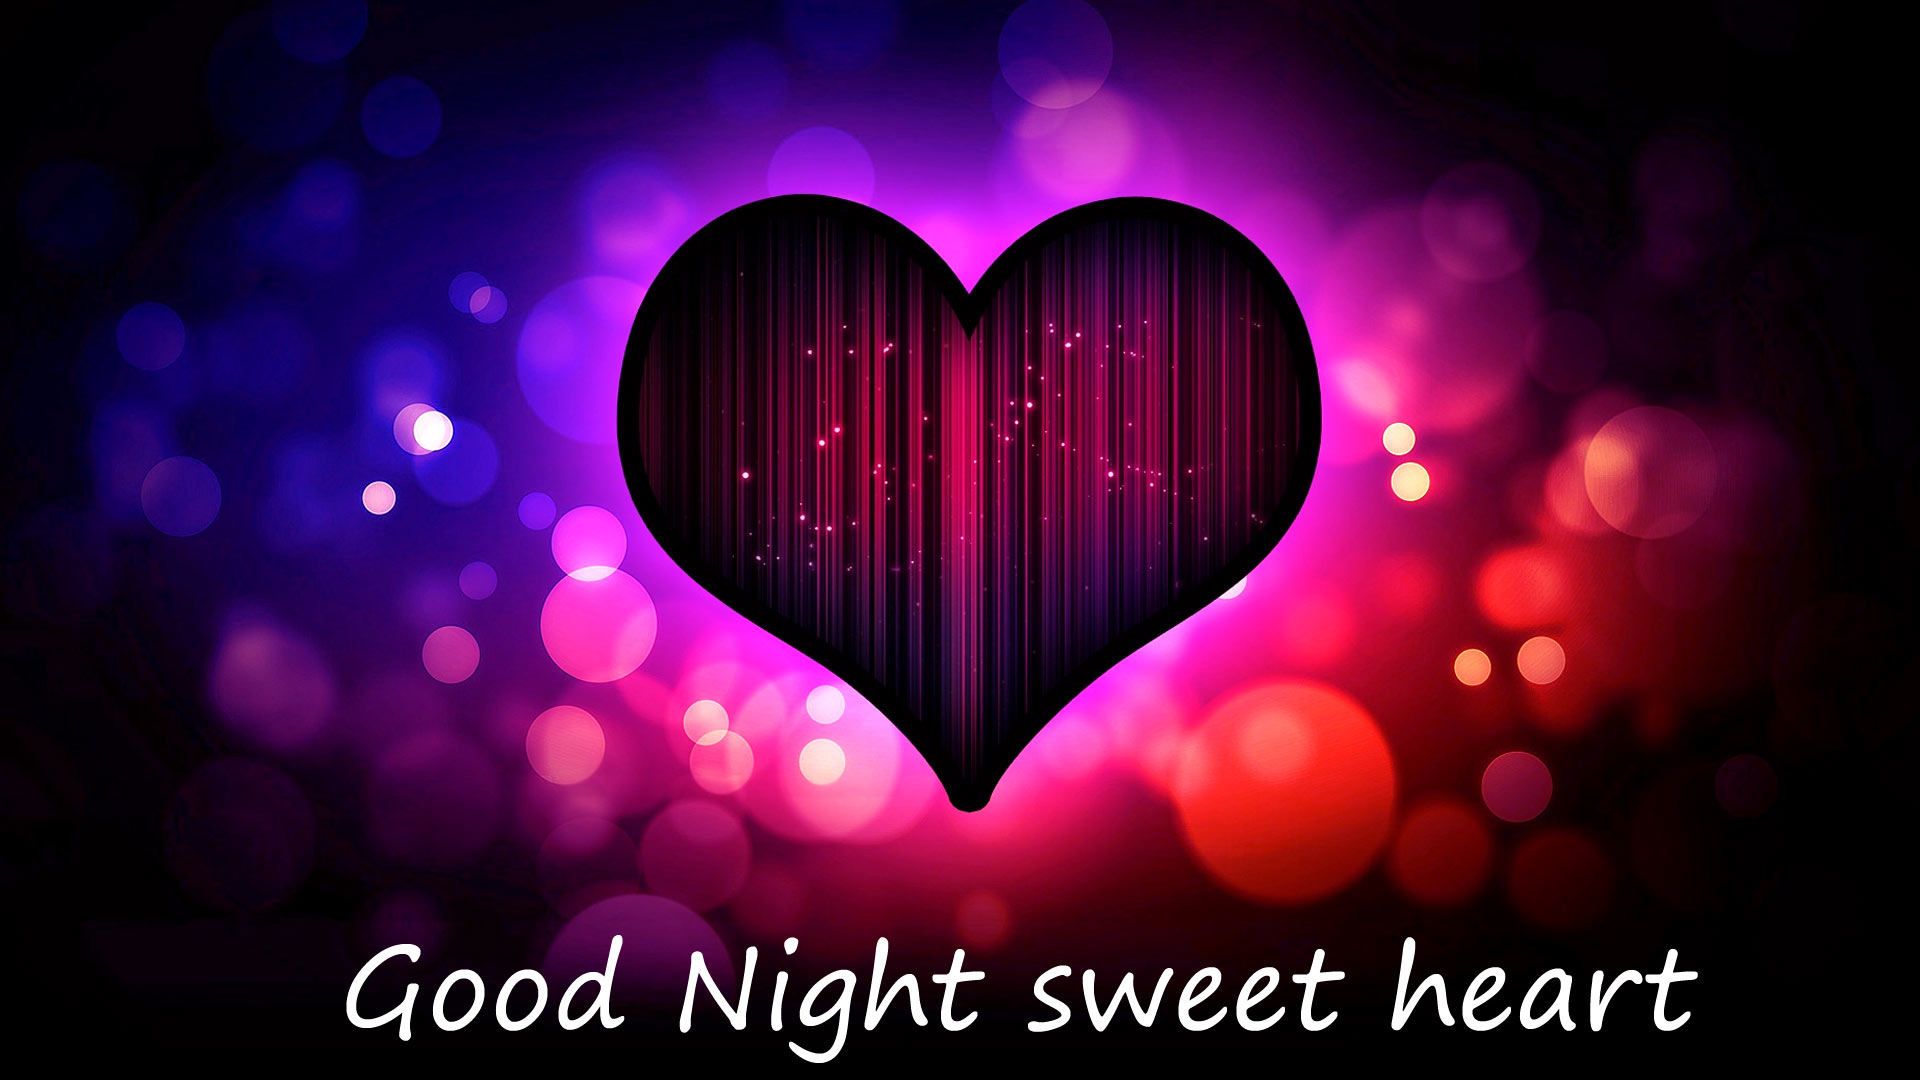 Good Night Heart love image